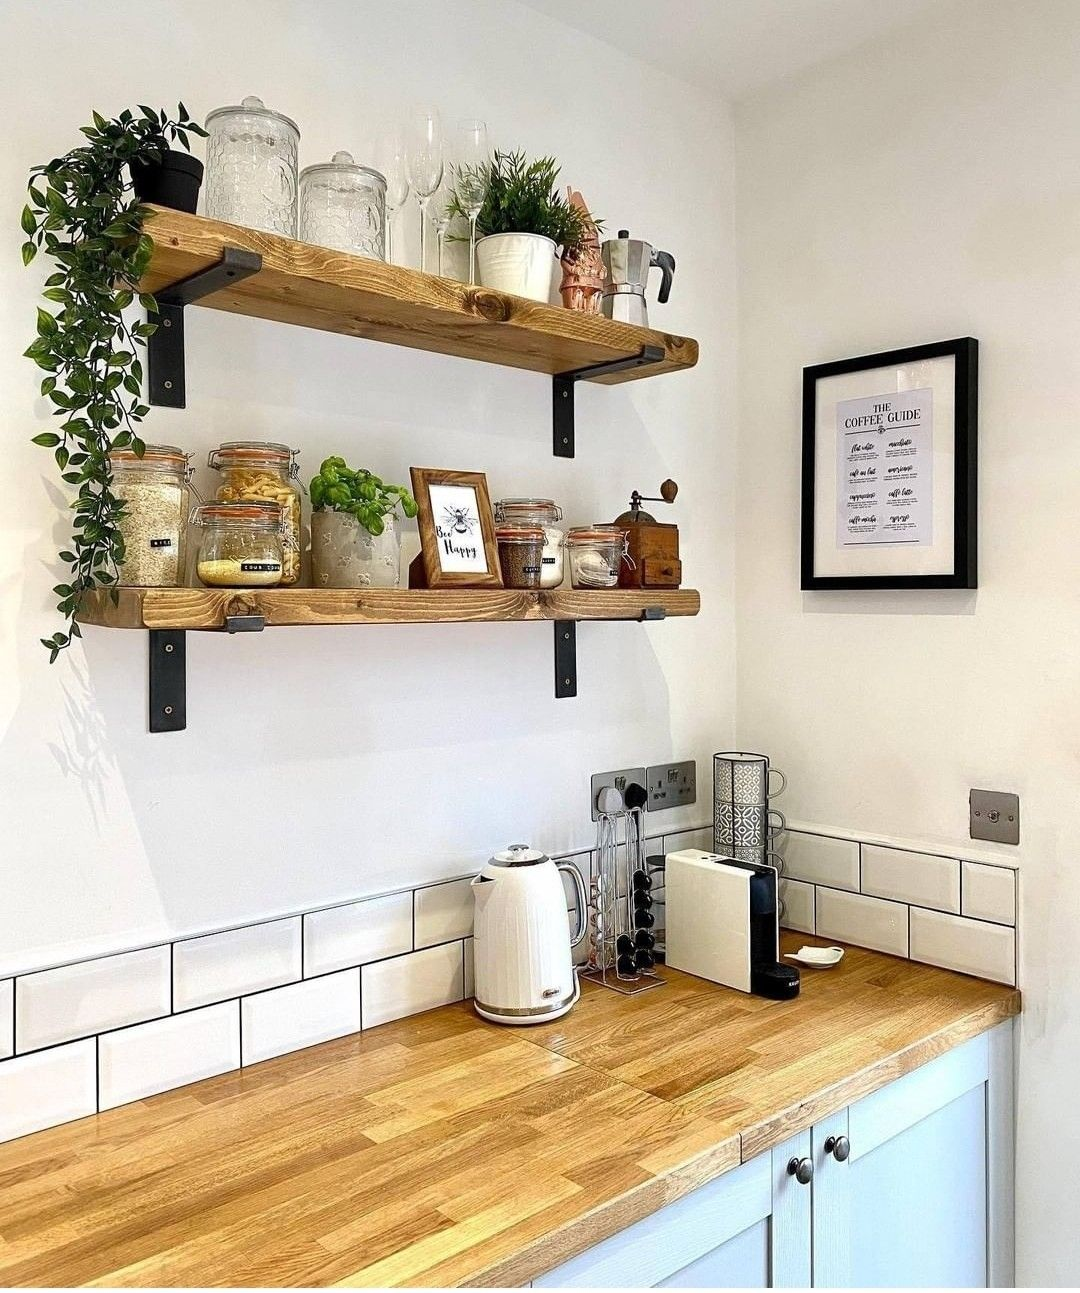 Pin by Natalia on Home in 2020 Home decor, Wood worktop